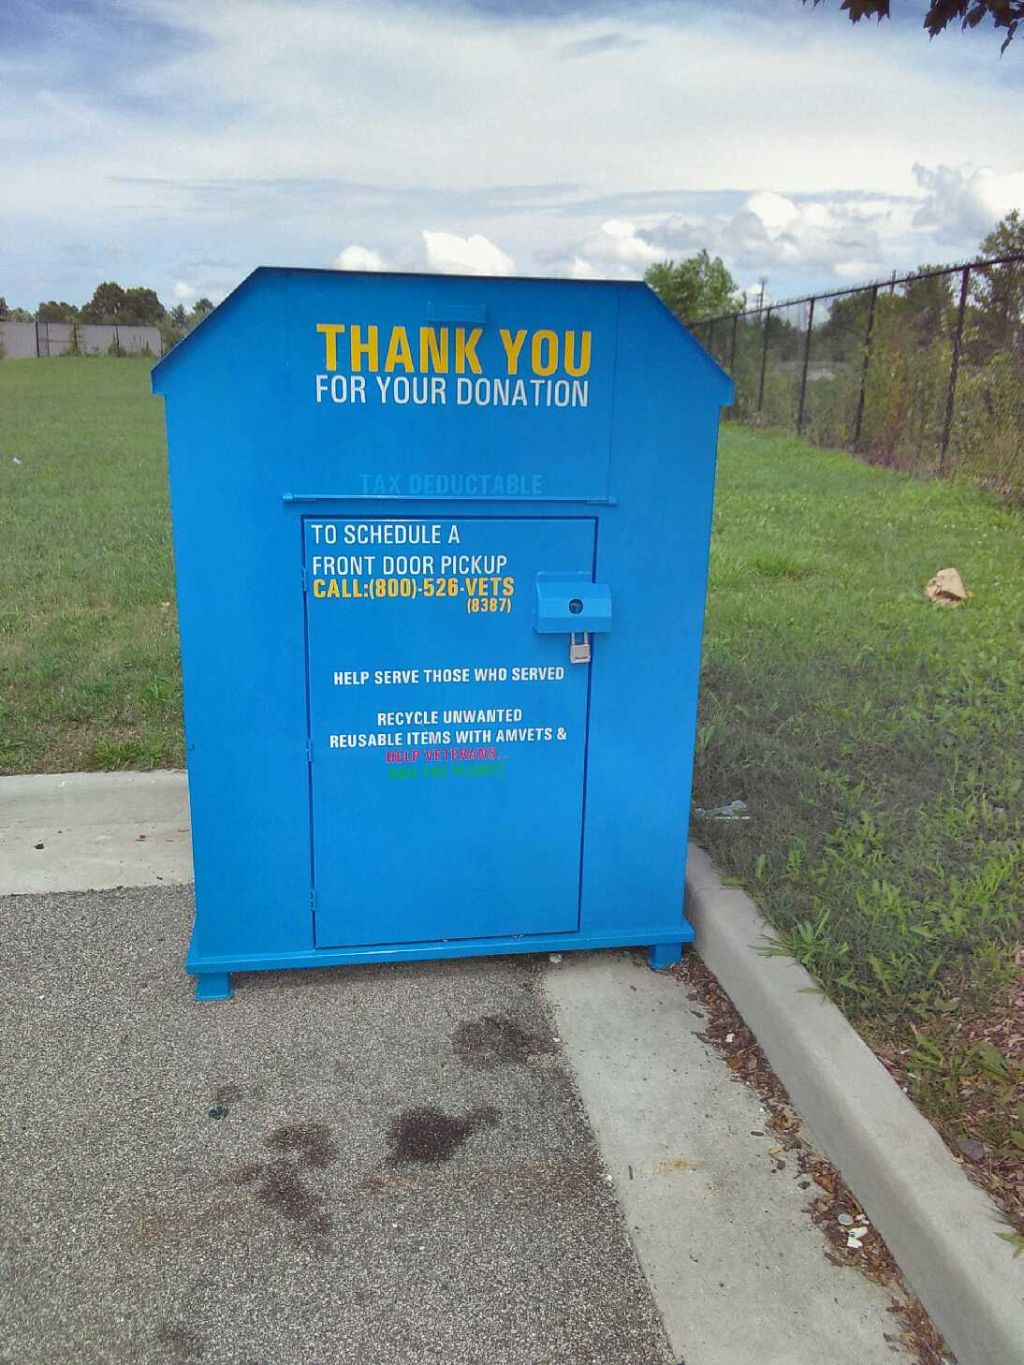 Showy Lowes Donation Box Amvets Donation Boxes Locations Can Be Found Here Lowes Shopping Center Paso Robles Ca Nail Salon By Lowes Paso Robles houzz-02 Lowes Paso Robles